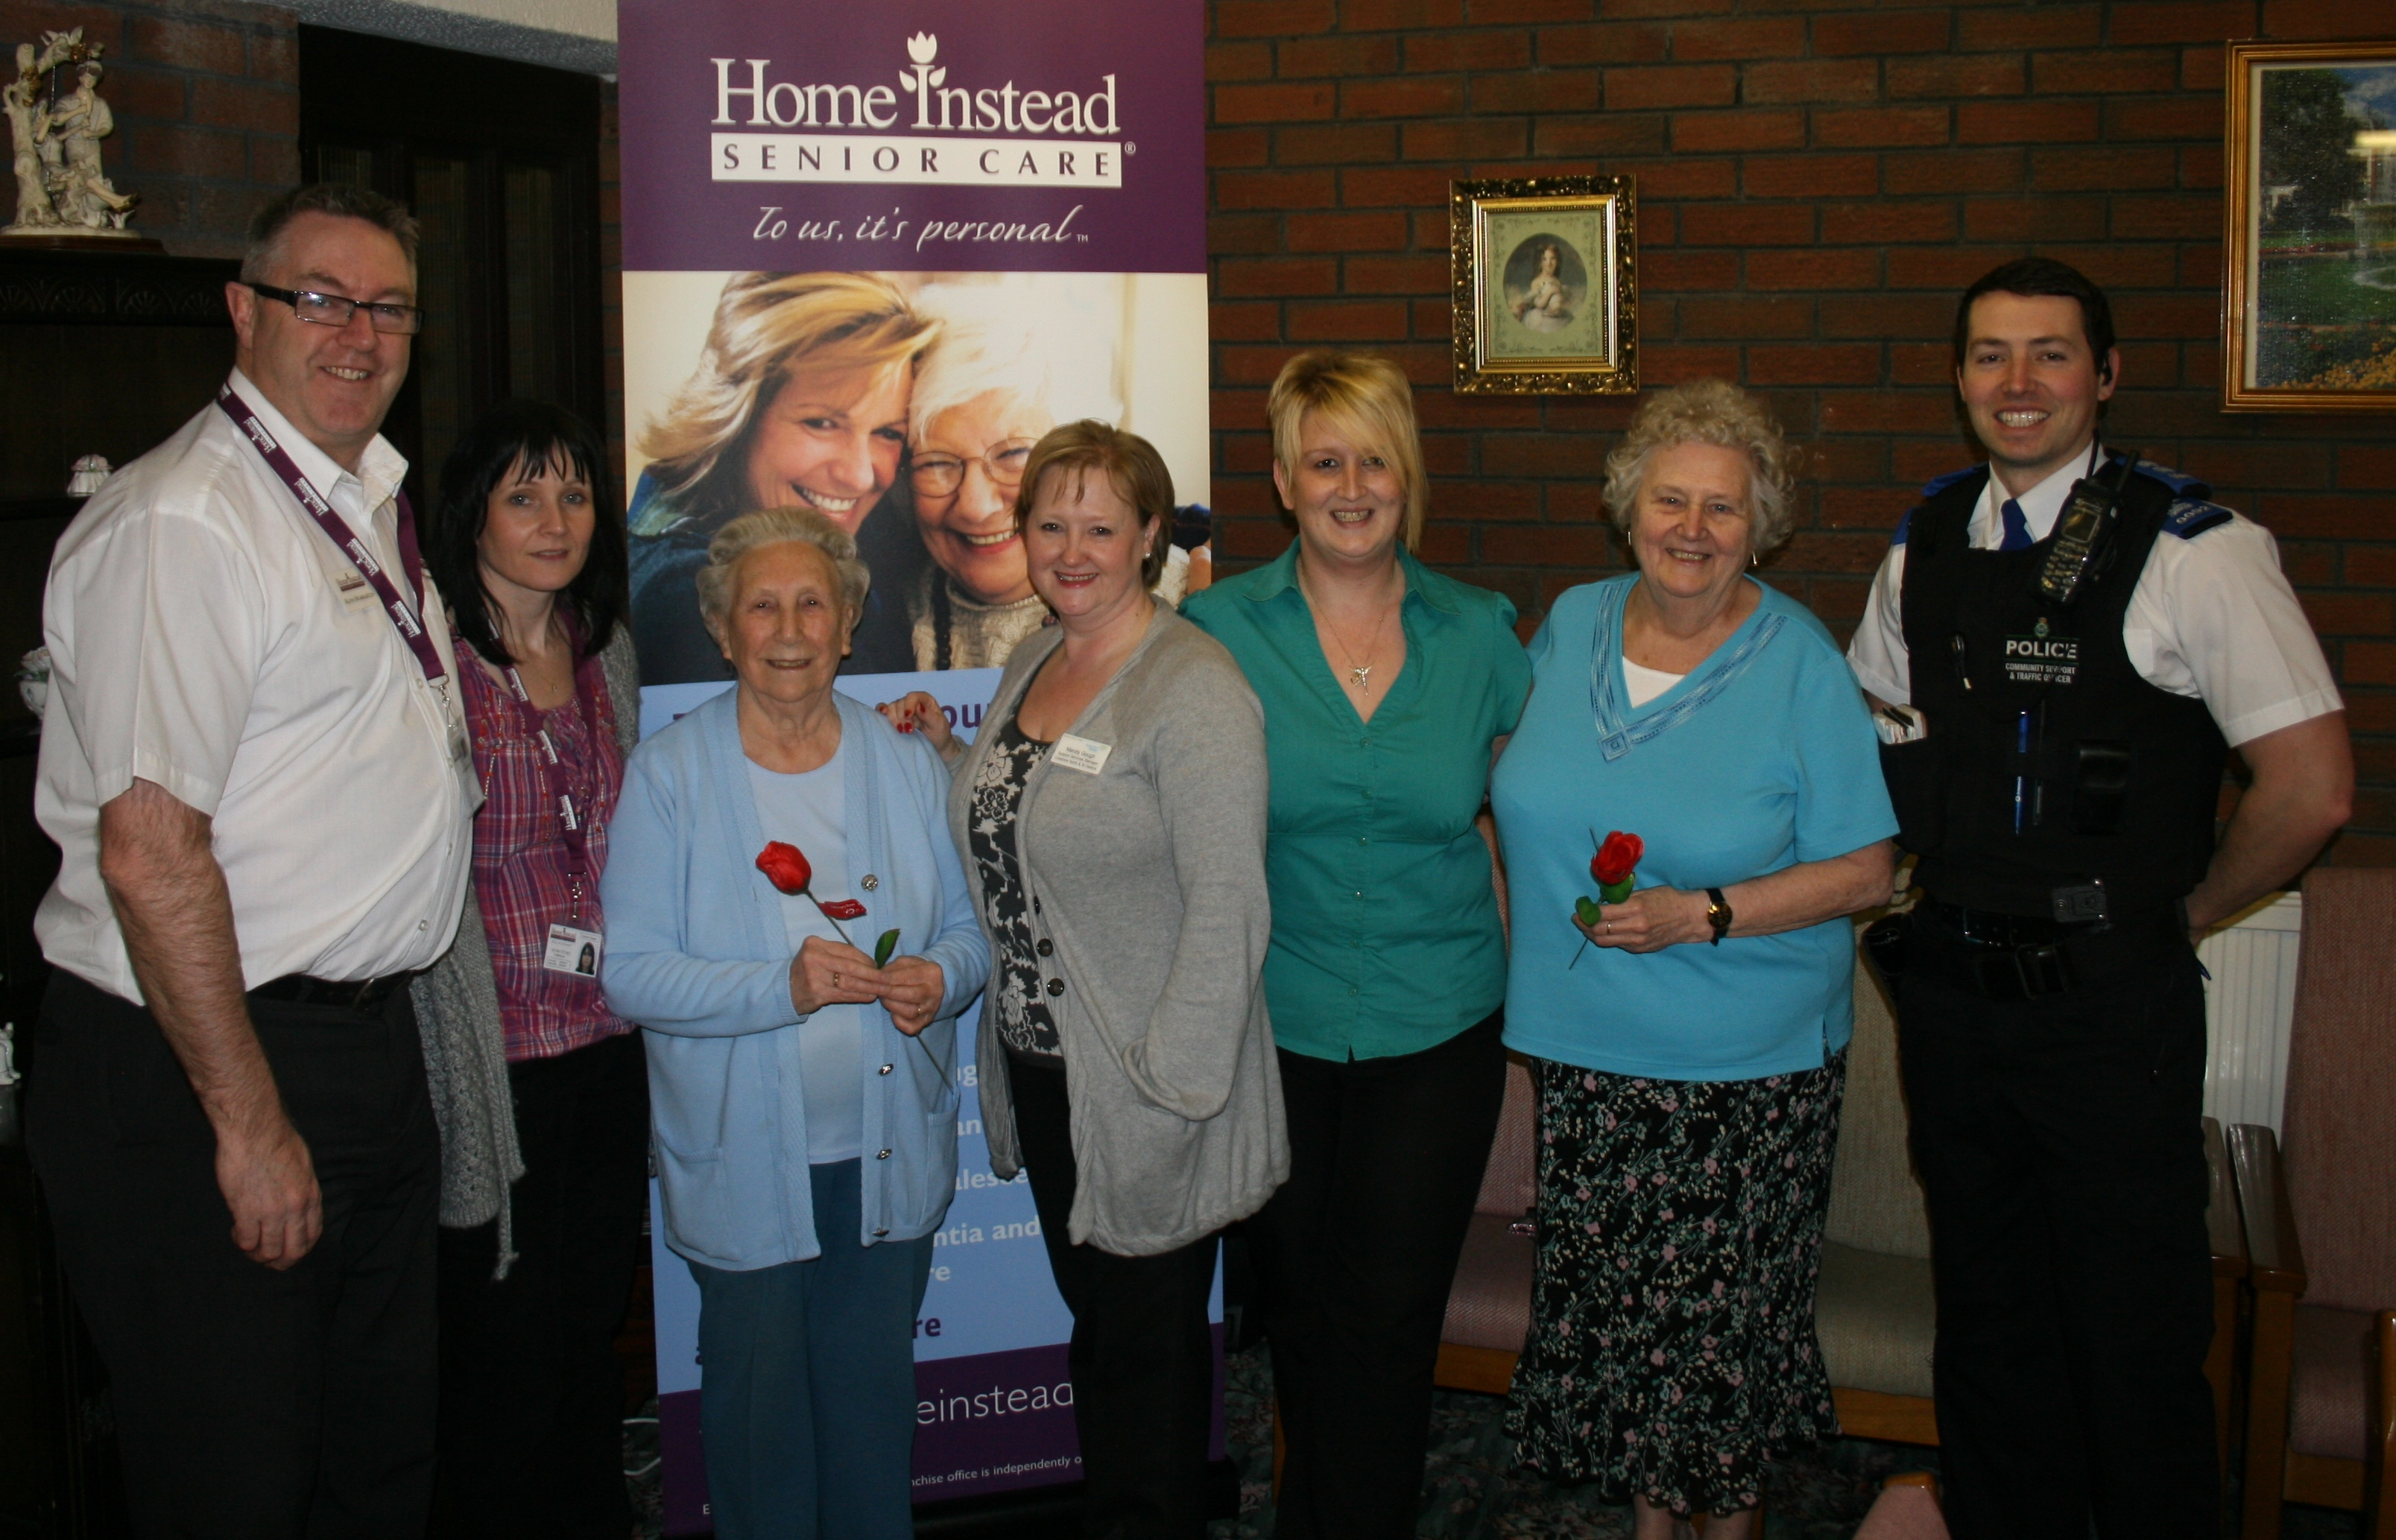 Home Instead St. Helens team members and residents of Raglan Court on Valentine's Day celebration